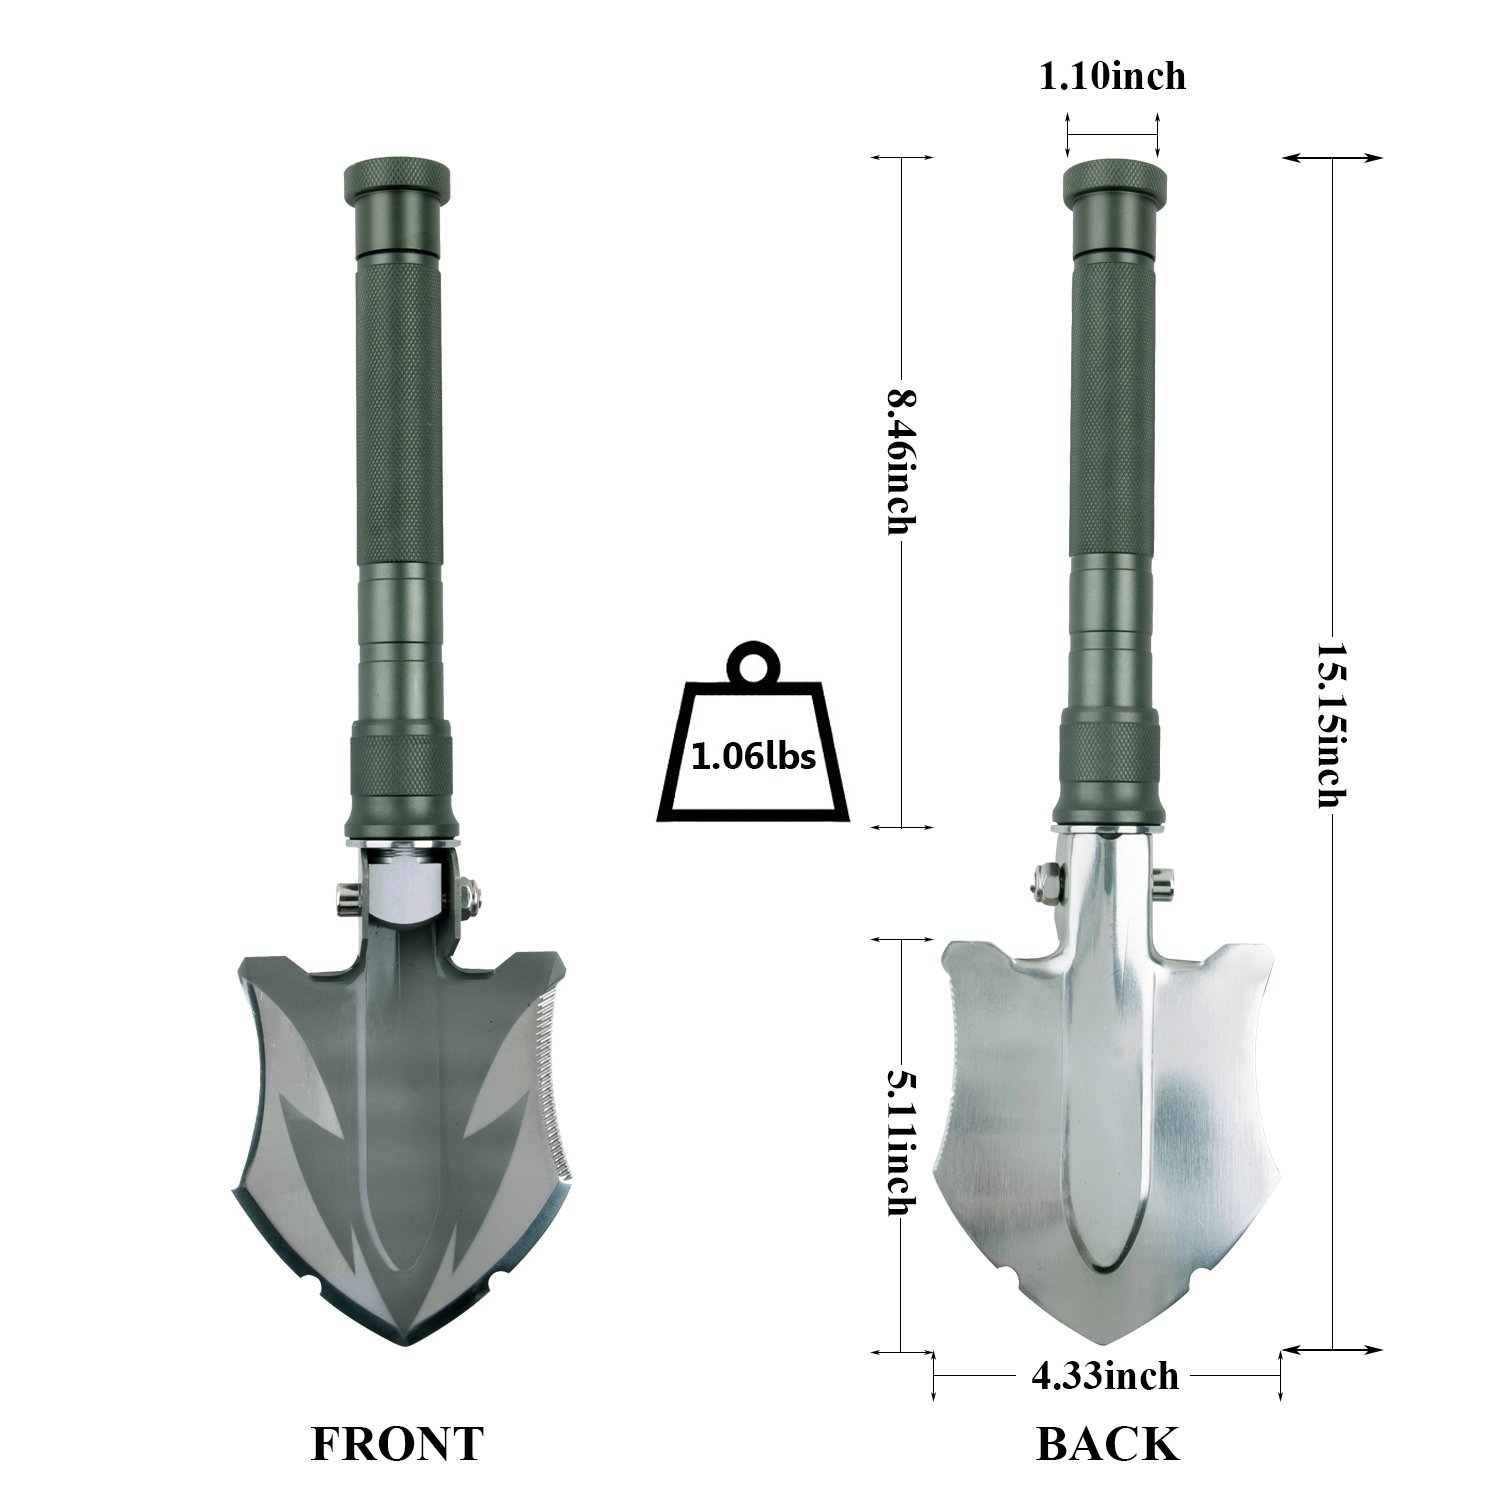 Glossday Military Folding Shovel Multitool,Portable Survival Shovels,Tactical Entrenching Tool,Heavy Duty Emergency Tool, Outdoor Gear Camping Backpacking,Fishing,Hiking (15inch) by Glossday (Image #3)